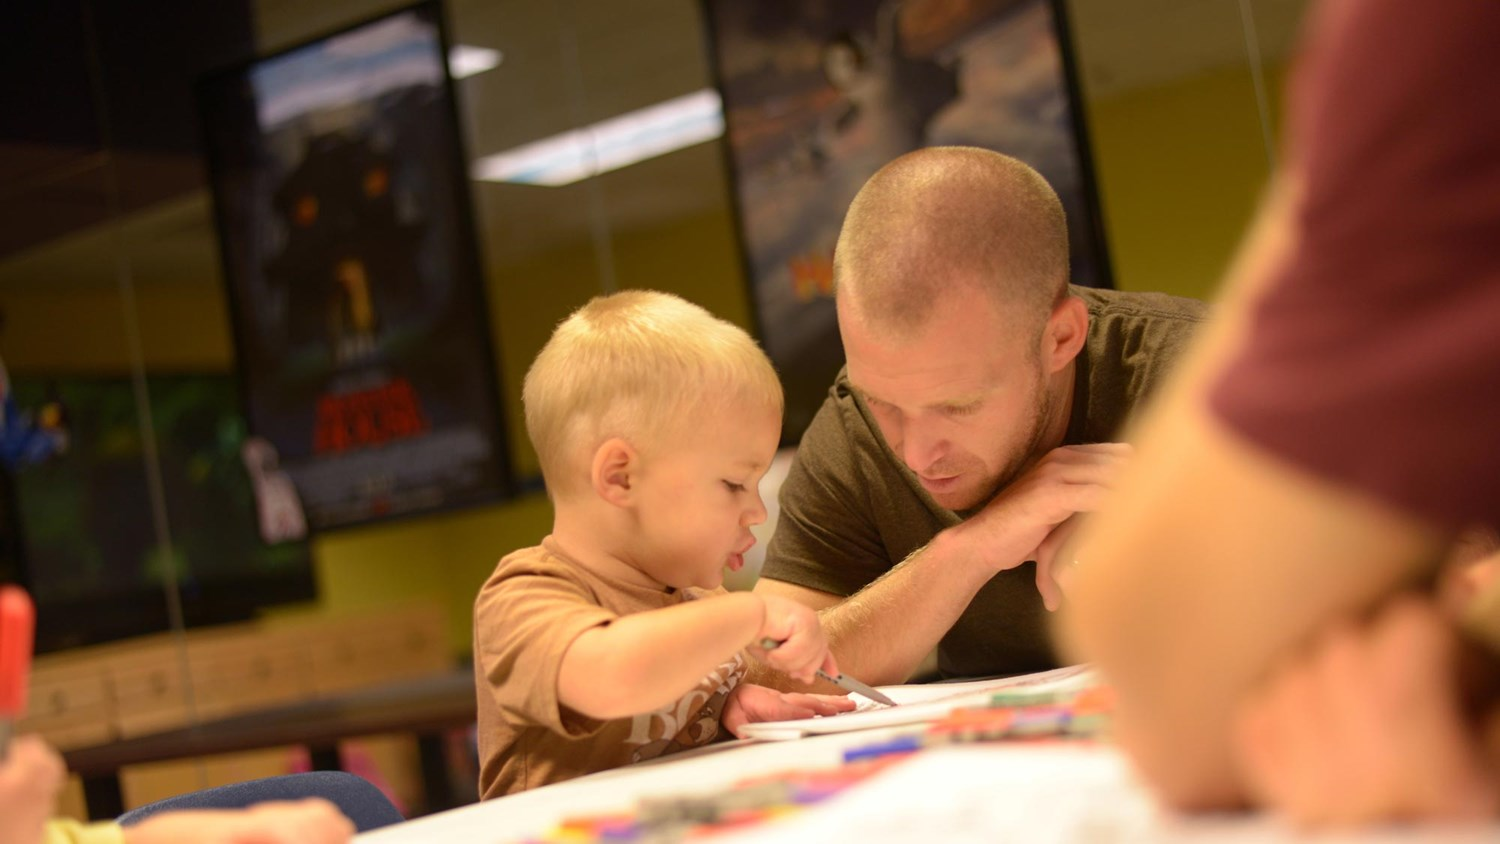 Father helping his baby son paint a picture